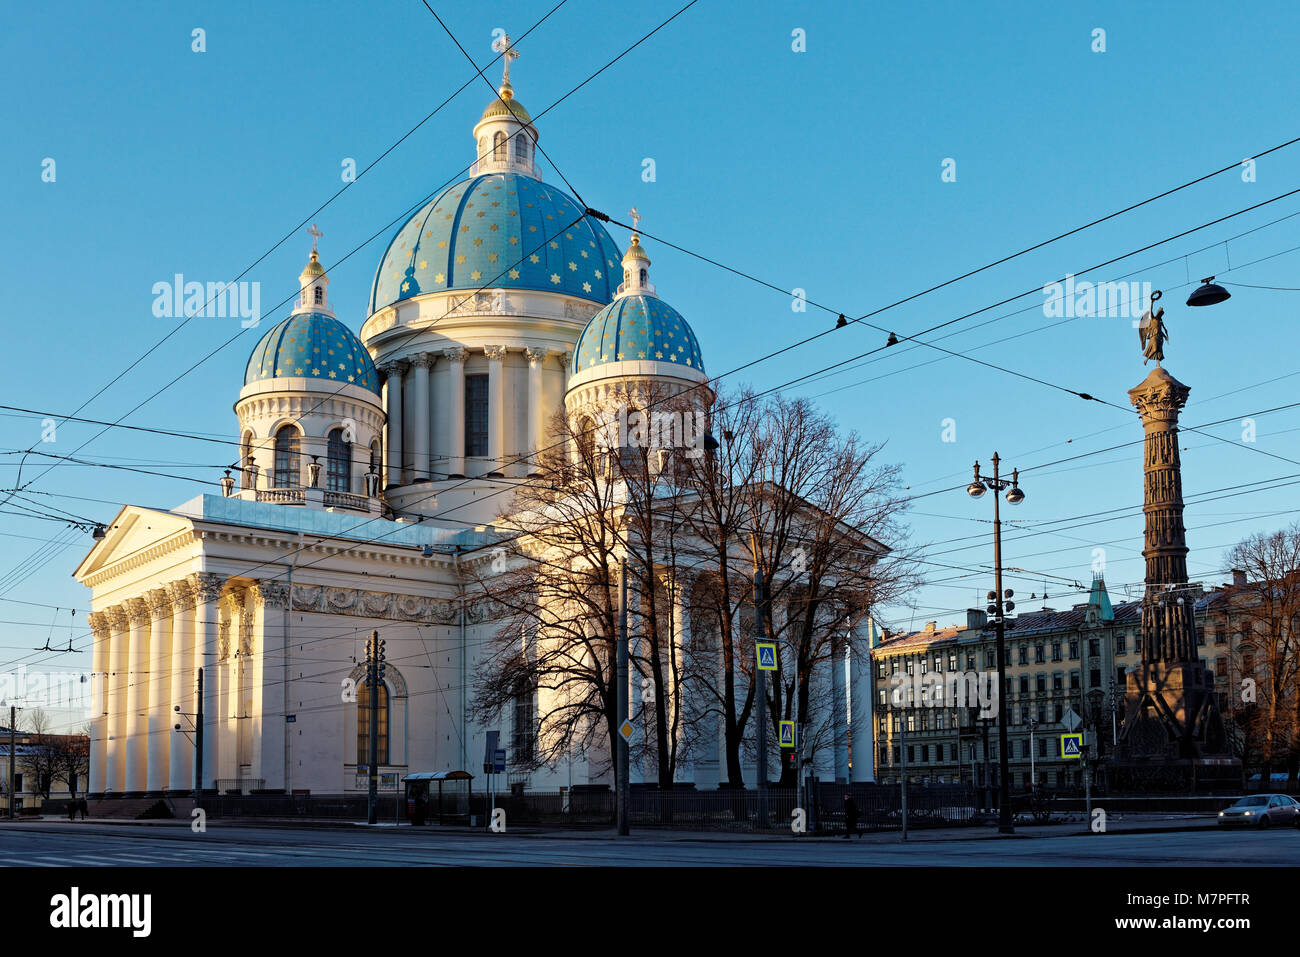 St. Petersburg, Russia - January 1, 2016: Trinity cathedral and Russo-Turkish War Memorial column in a winter day. - Stock Image